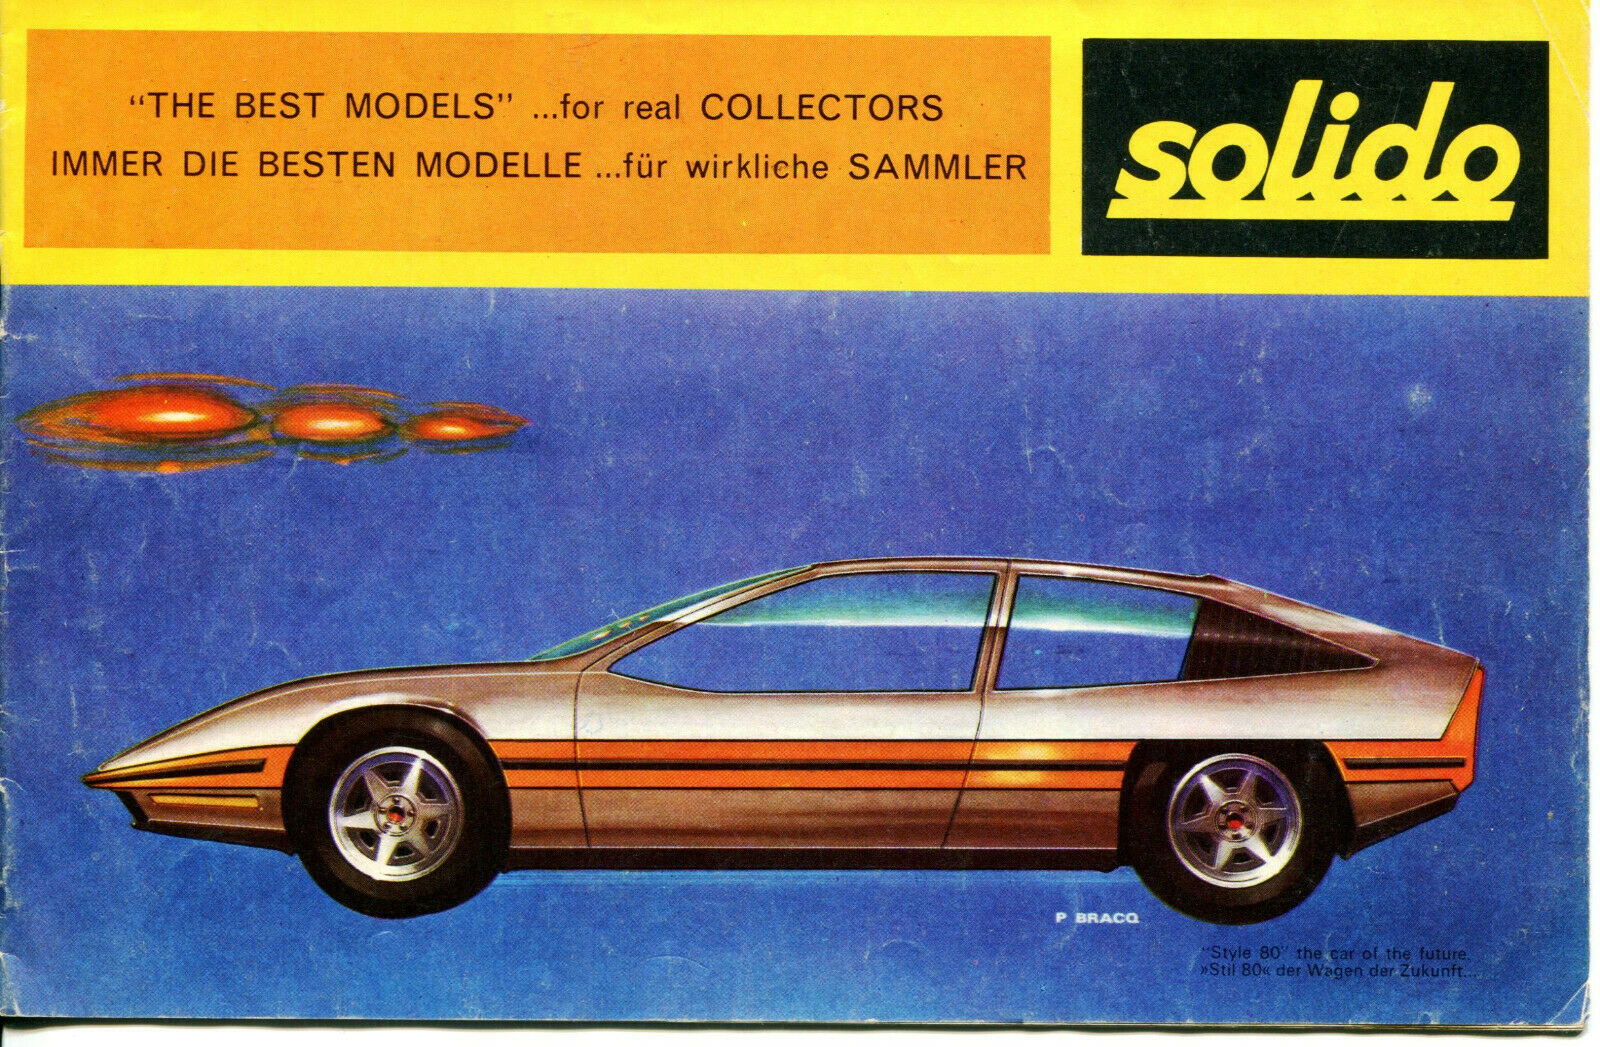 SOLIDO 1970 Catalog 1/43 Scale Models (In French, English, German) ULTRA-RARE!